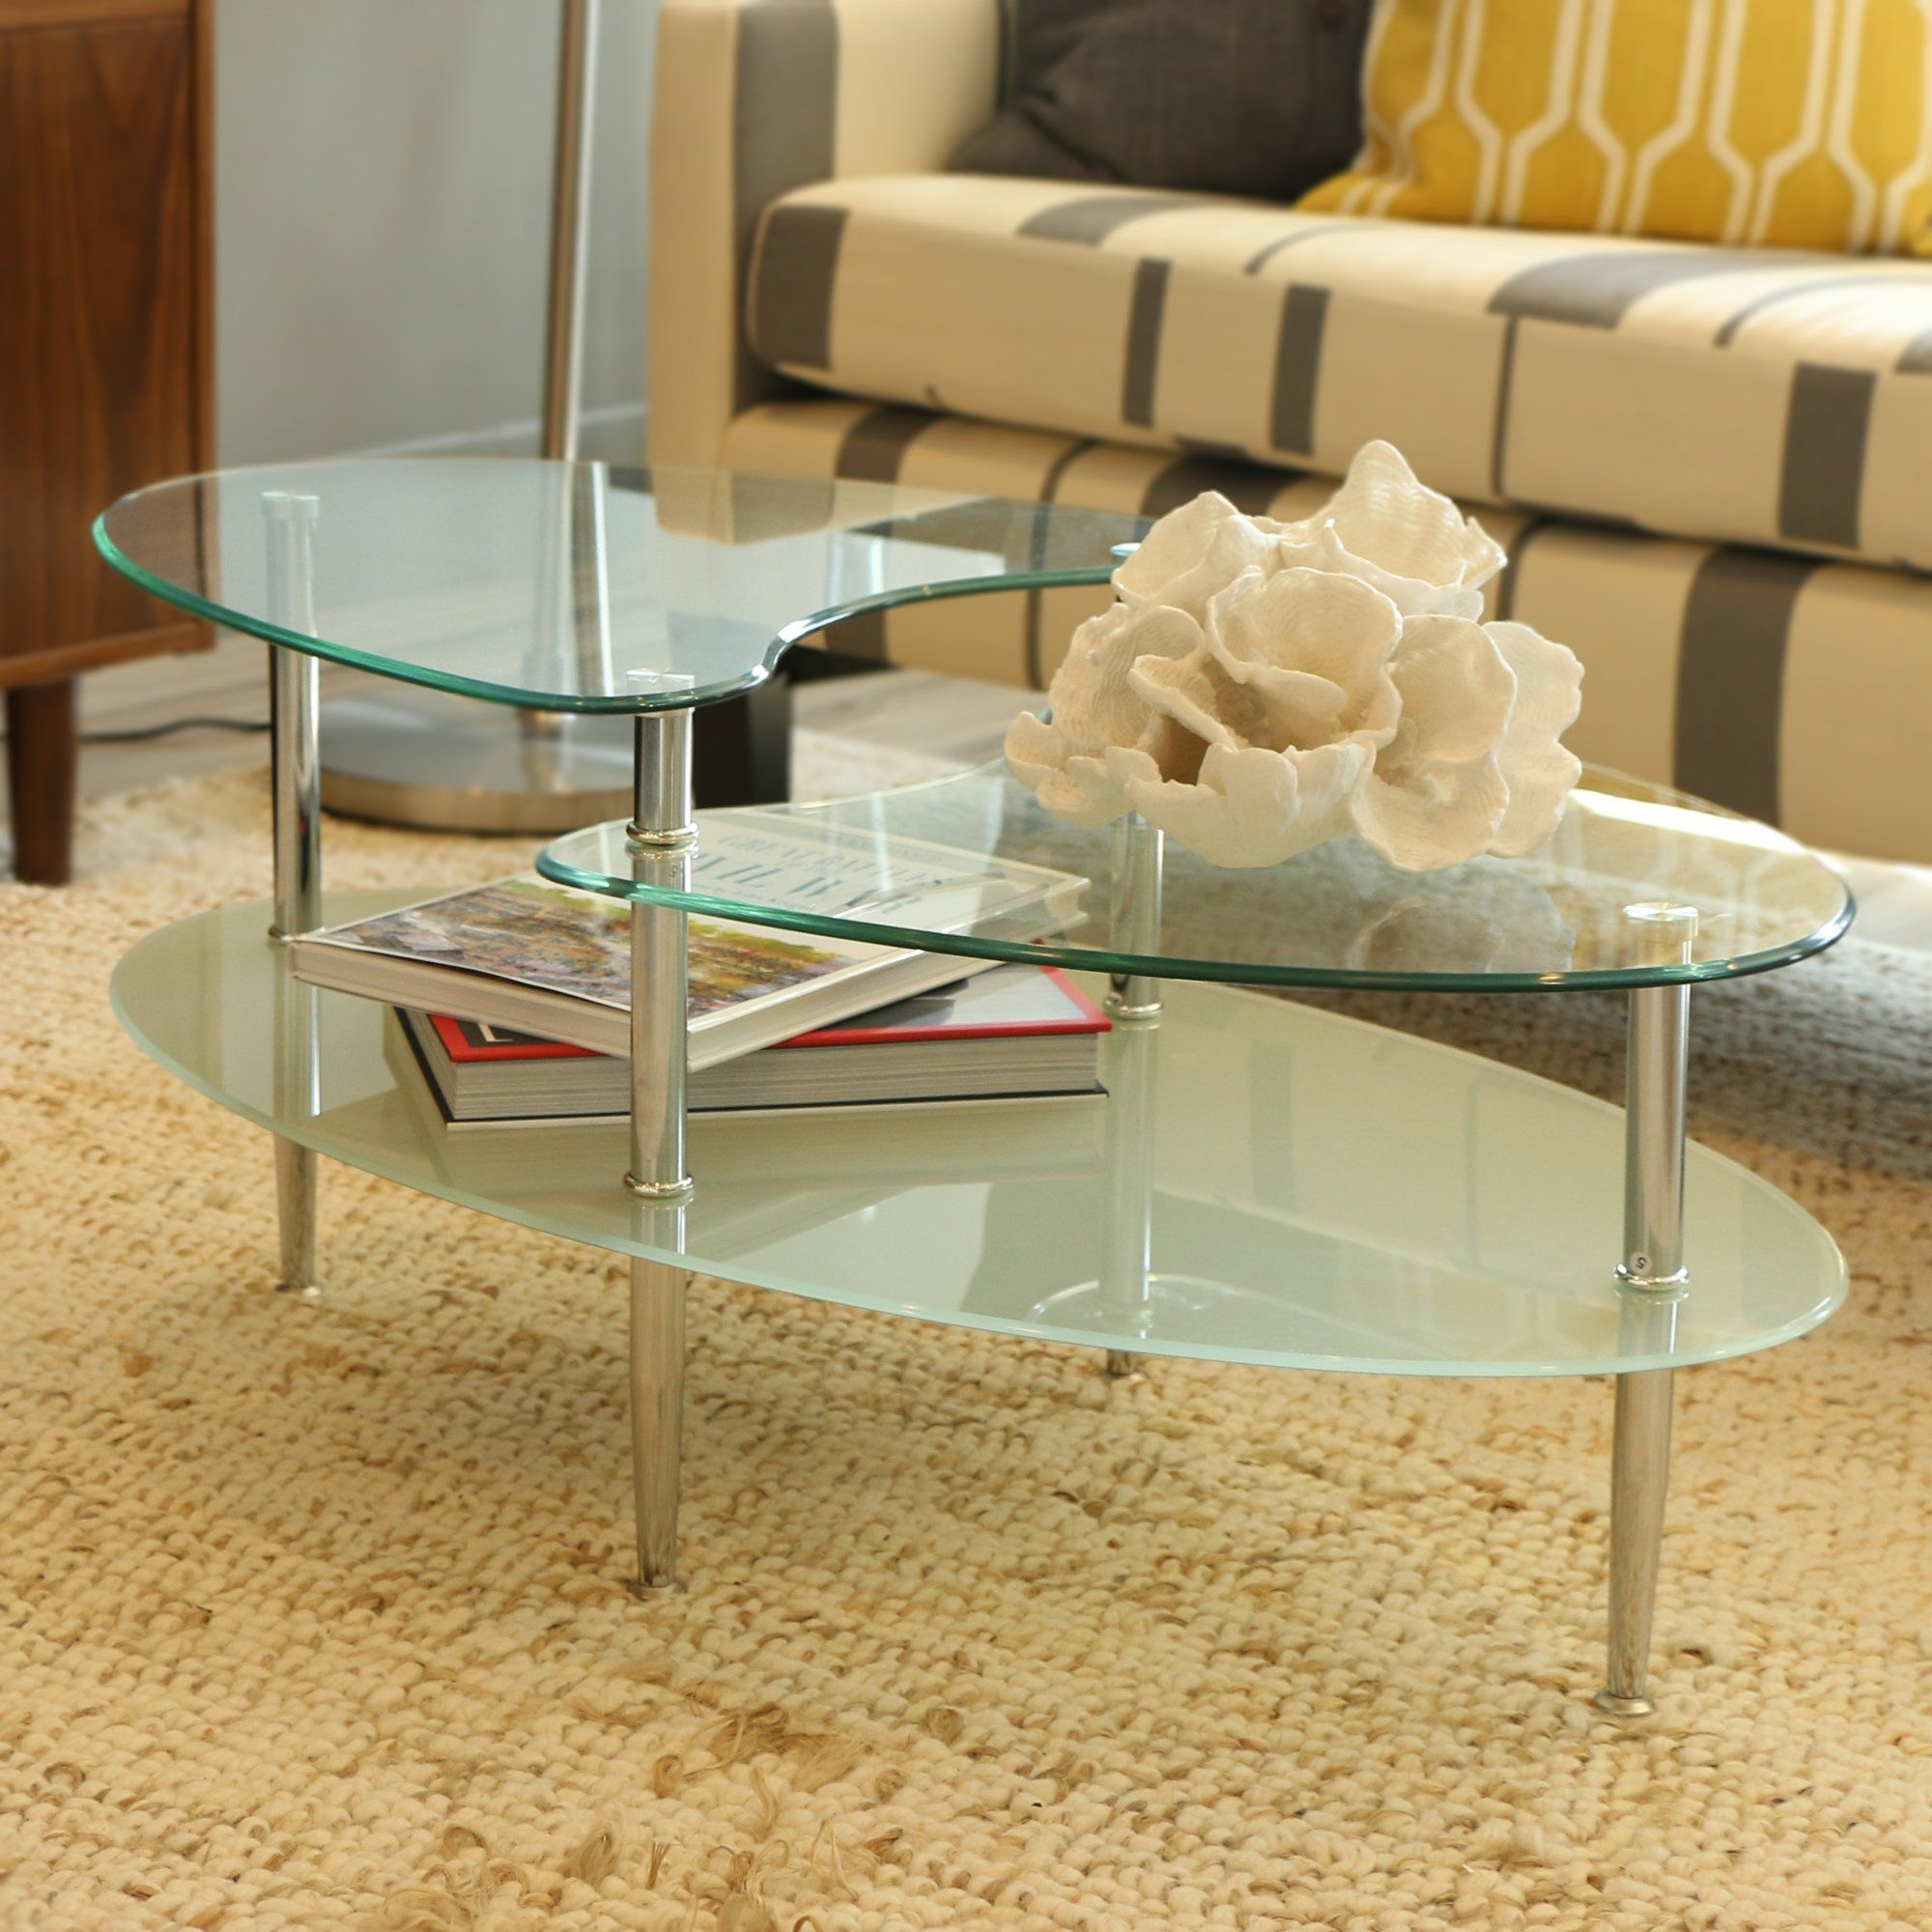 Pin By Aracely Navarro On Ideas For The House In 2020 Coffee Table Oval Glass Coffee Table Glass Coffee Table [ 2000 x 2000 Pixel ]